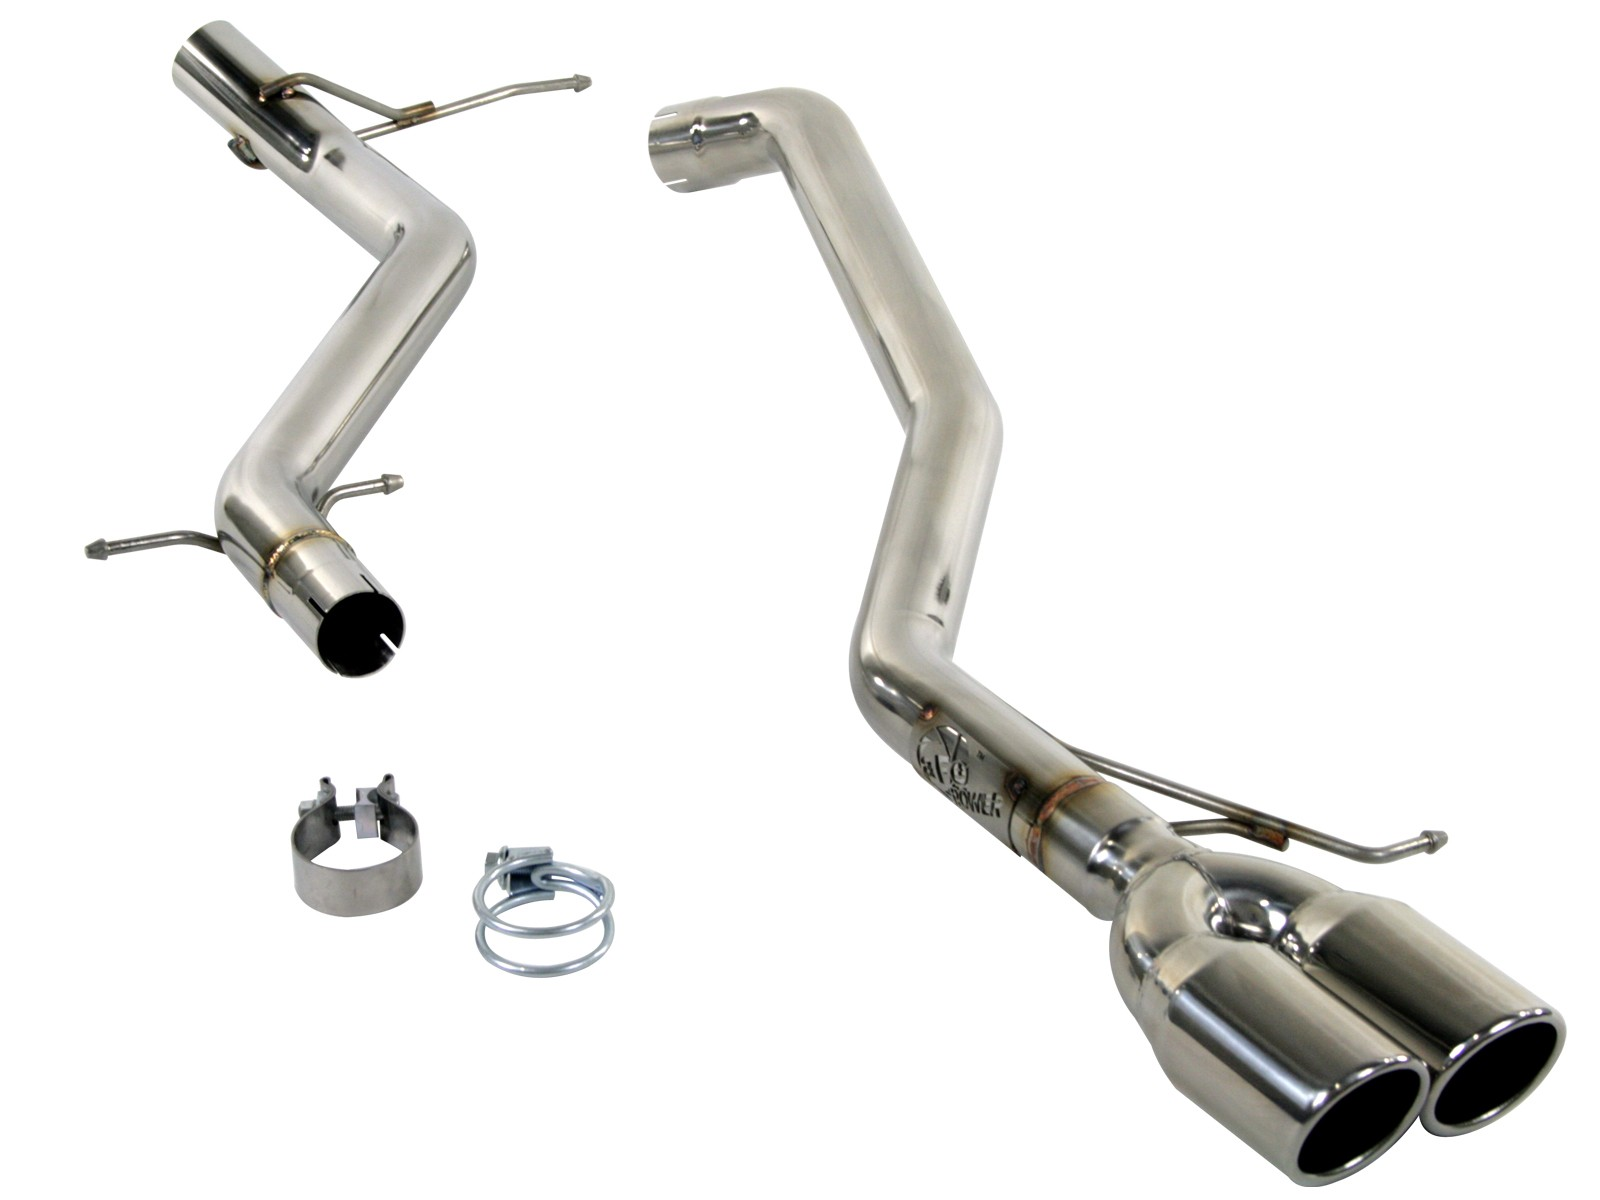 "aFe POWER 49-36401 MACH Force-Xp 2-1/2"" 304 Stainless Steel Cat-Back Exhaust System"